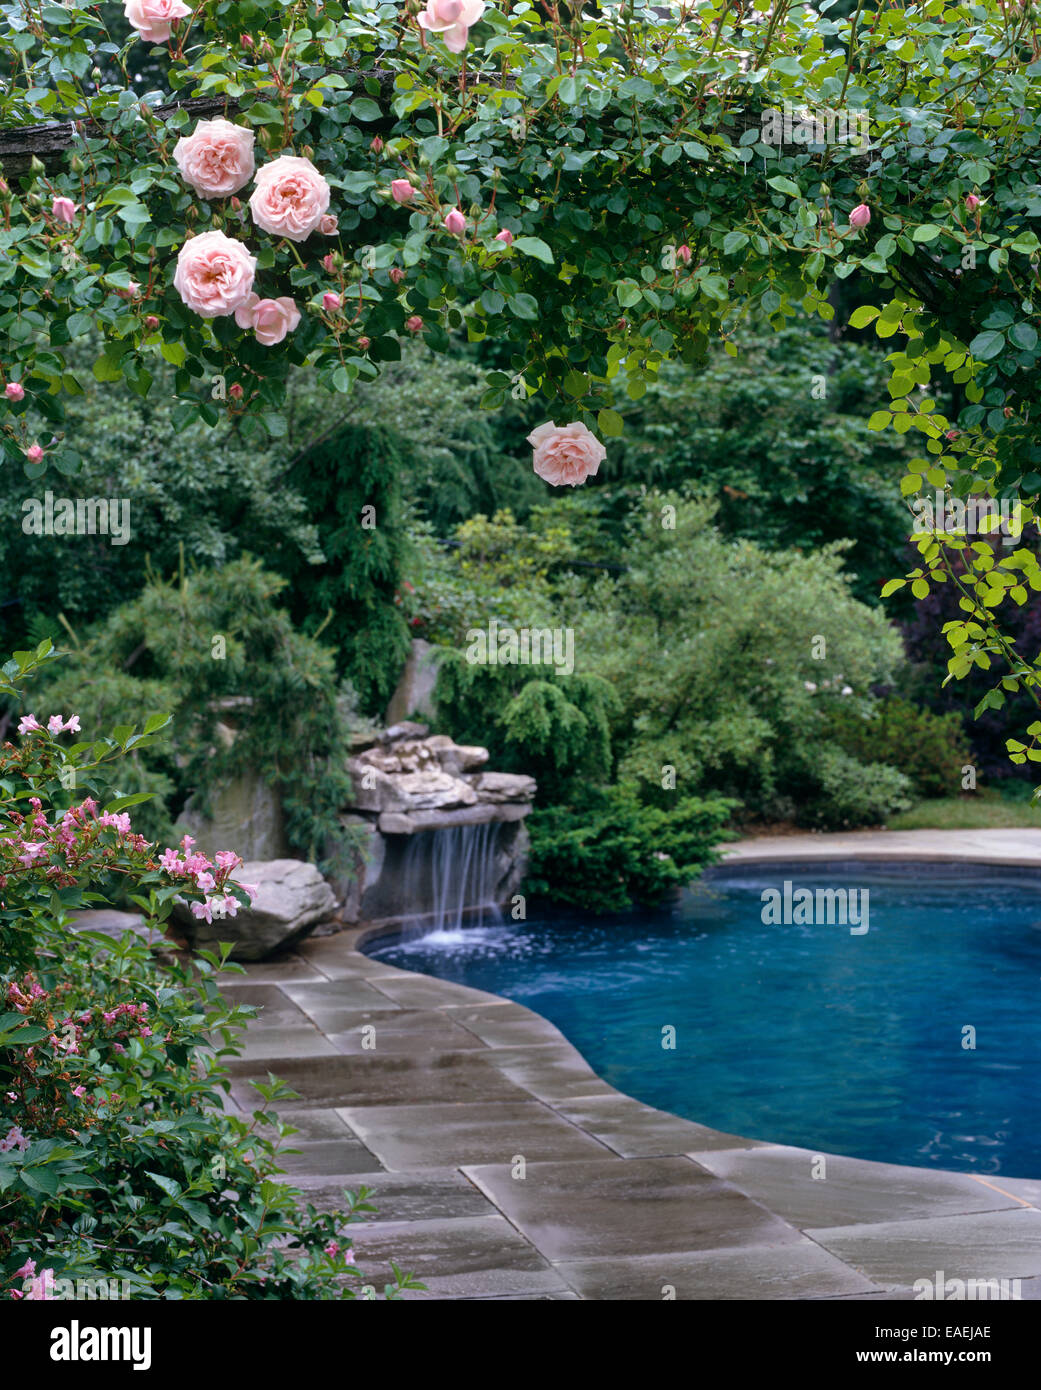 swimming pool and water fall as seen through garden roses - Stock Image